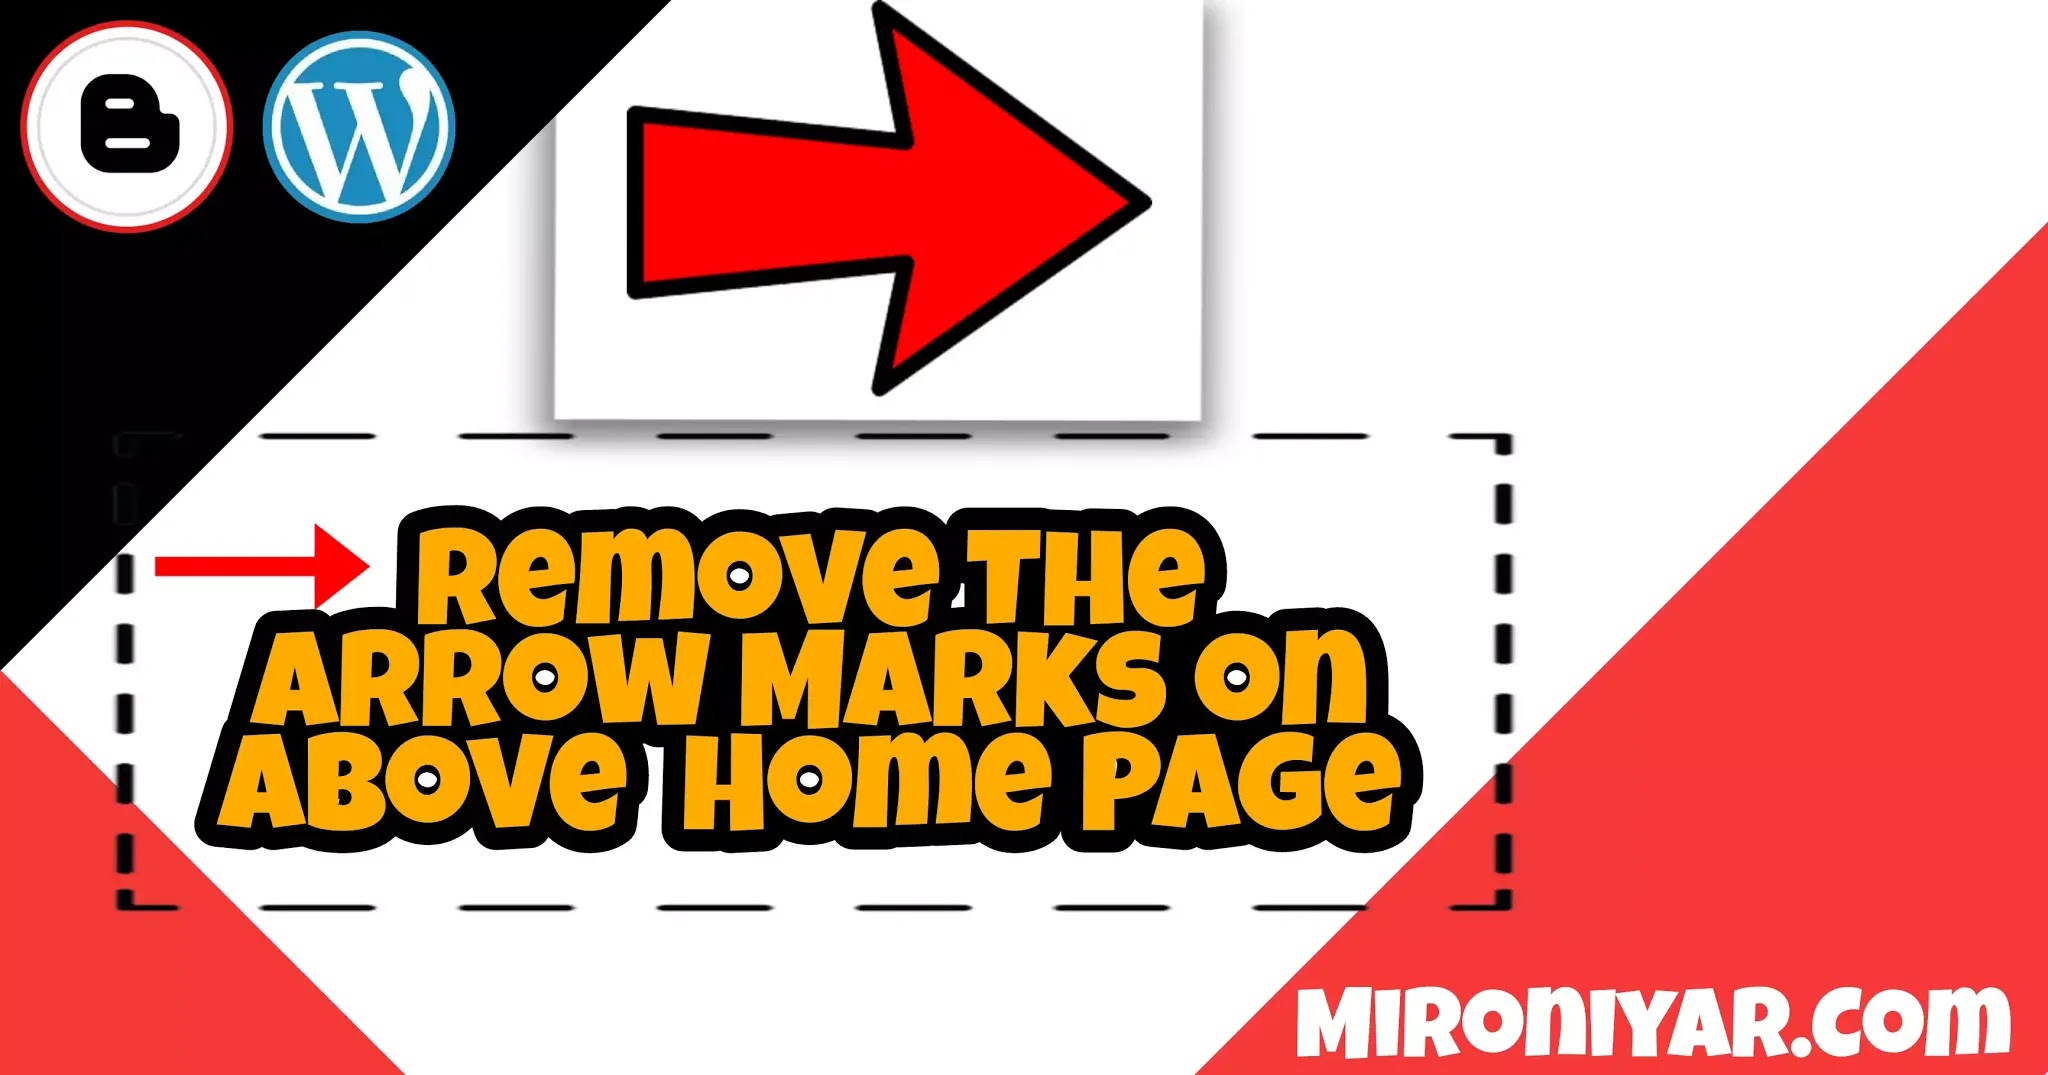 How To Remove The Arrow Marks on  Above Blog Page